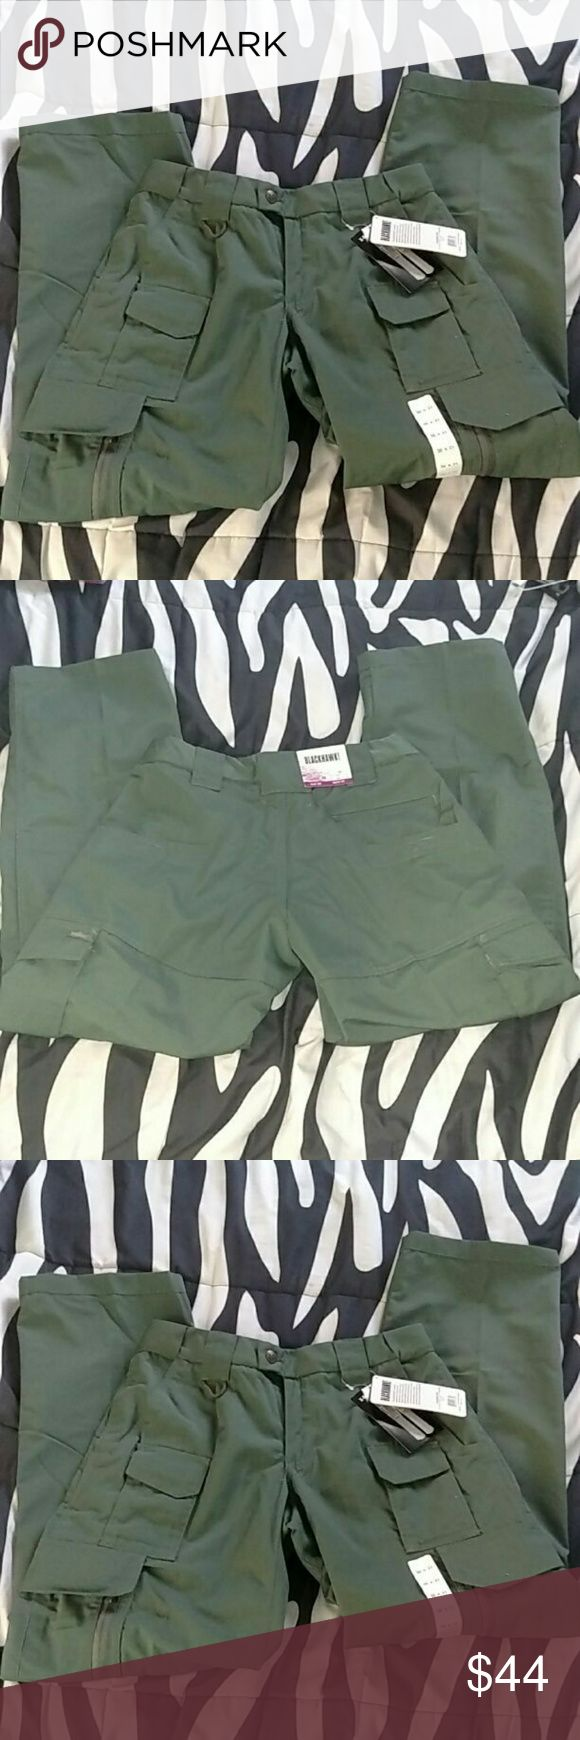 NWT Blackhawk tactical uniform cargo pants Authentic Blackhawk Women's TacticalPants Size: 30x31 Brand new with tags Color: OD Green  Constructed of wrinkle-, fade- and stain-resistant 6.5 oz. polyester/cotton blend  DWR (Durable Water Repellent) treatment resists stains and dries quickly  Hidden expandable waistband for increased mobility with a clean look  Silicone grip strip in waistband keeps shirt tucked in  Angle-cut pockets for vertical storage of knife or flashlight without…